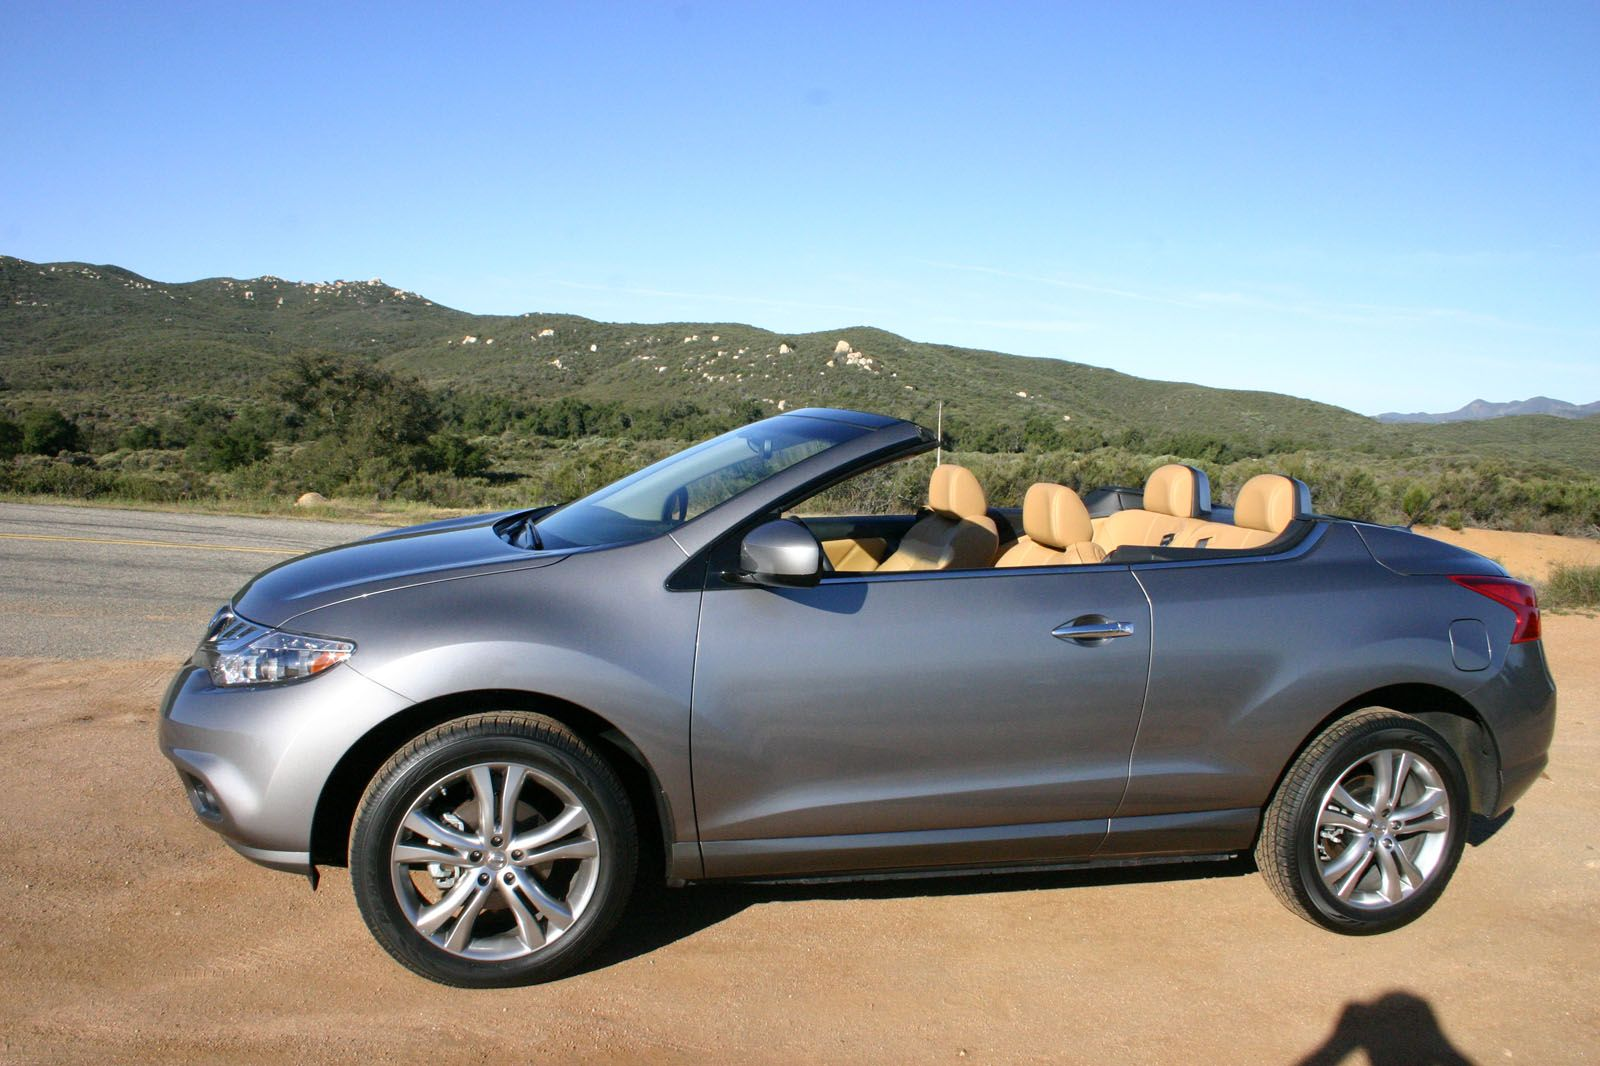 Nissan Murano Convertible For Sale Text Photos And Videos By Cor Steenstra Nissan Murano Convertible Nissan